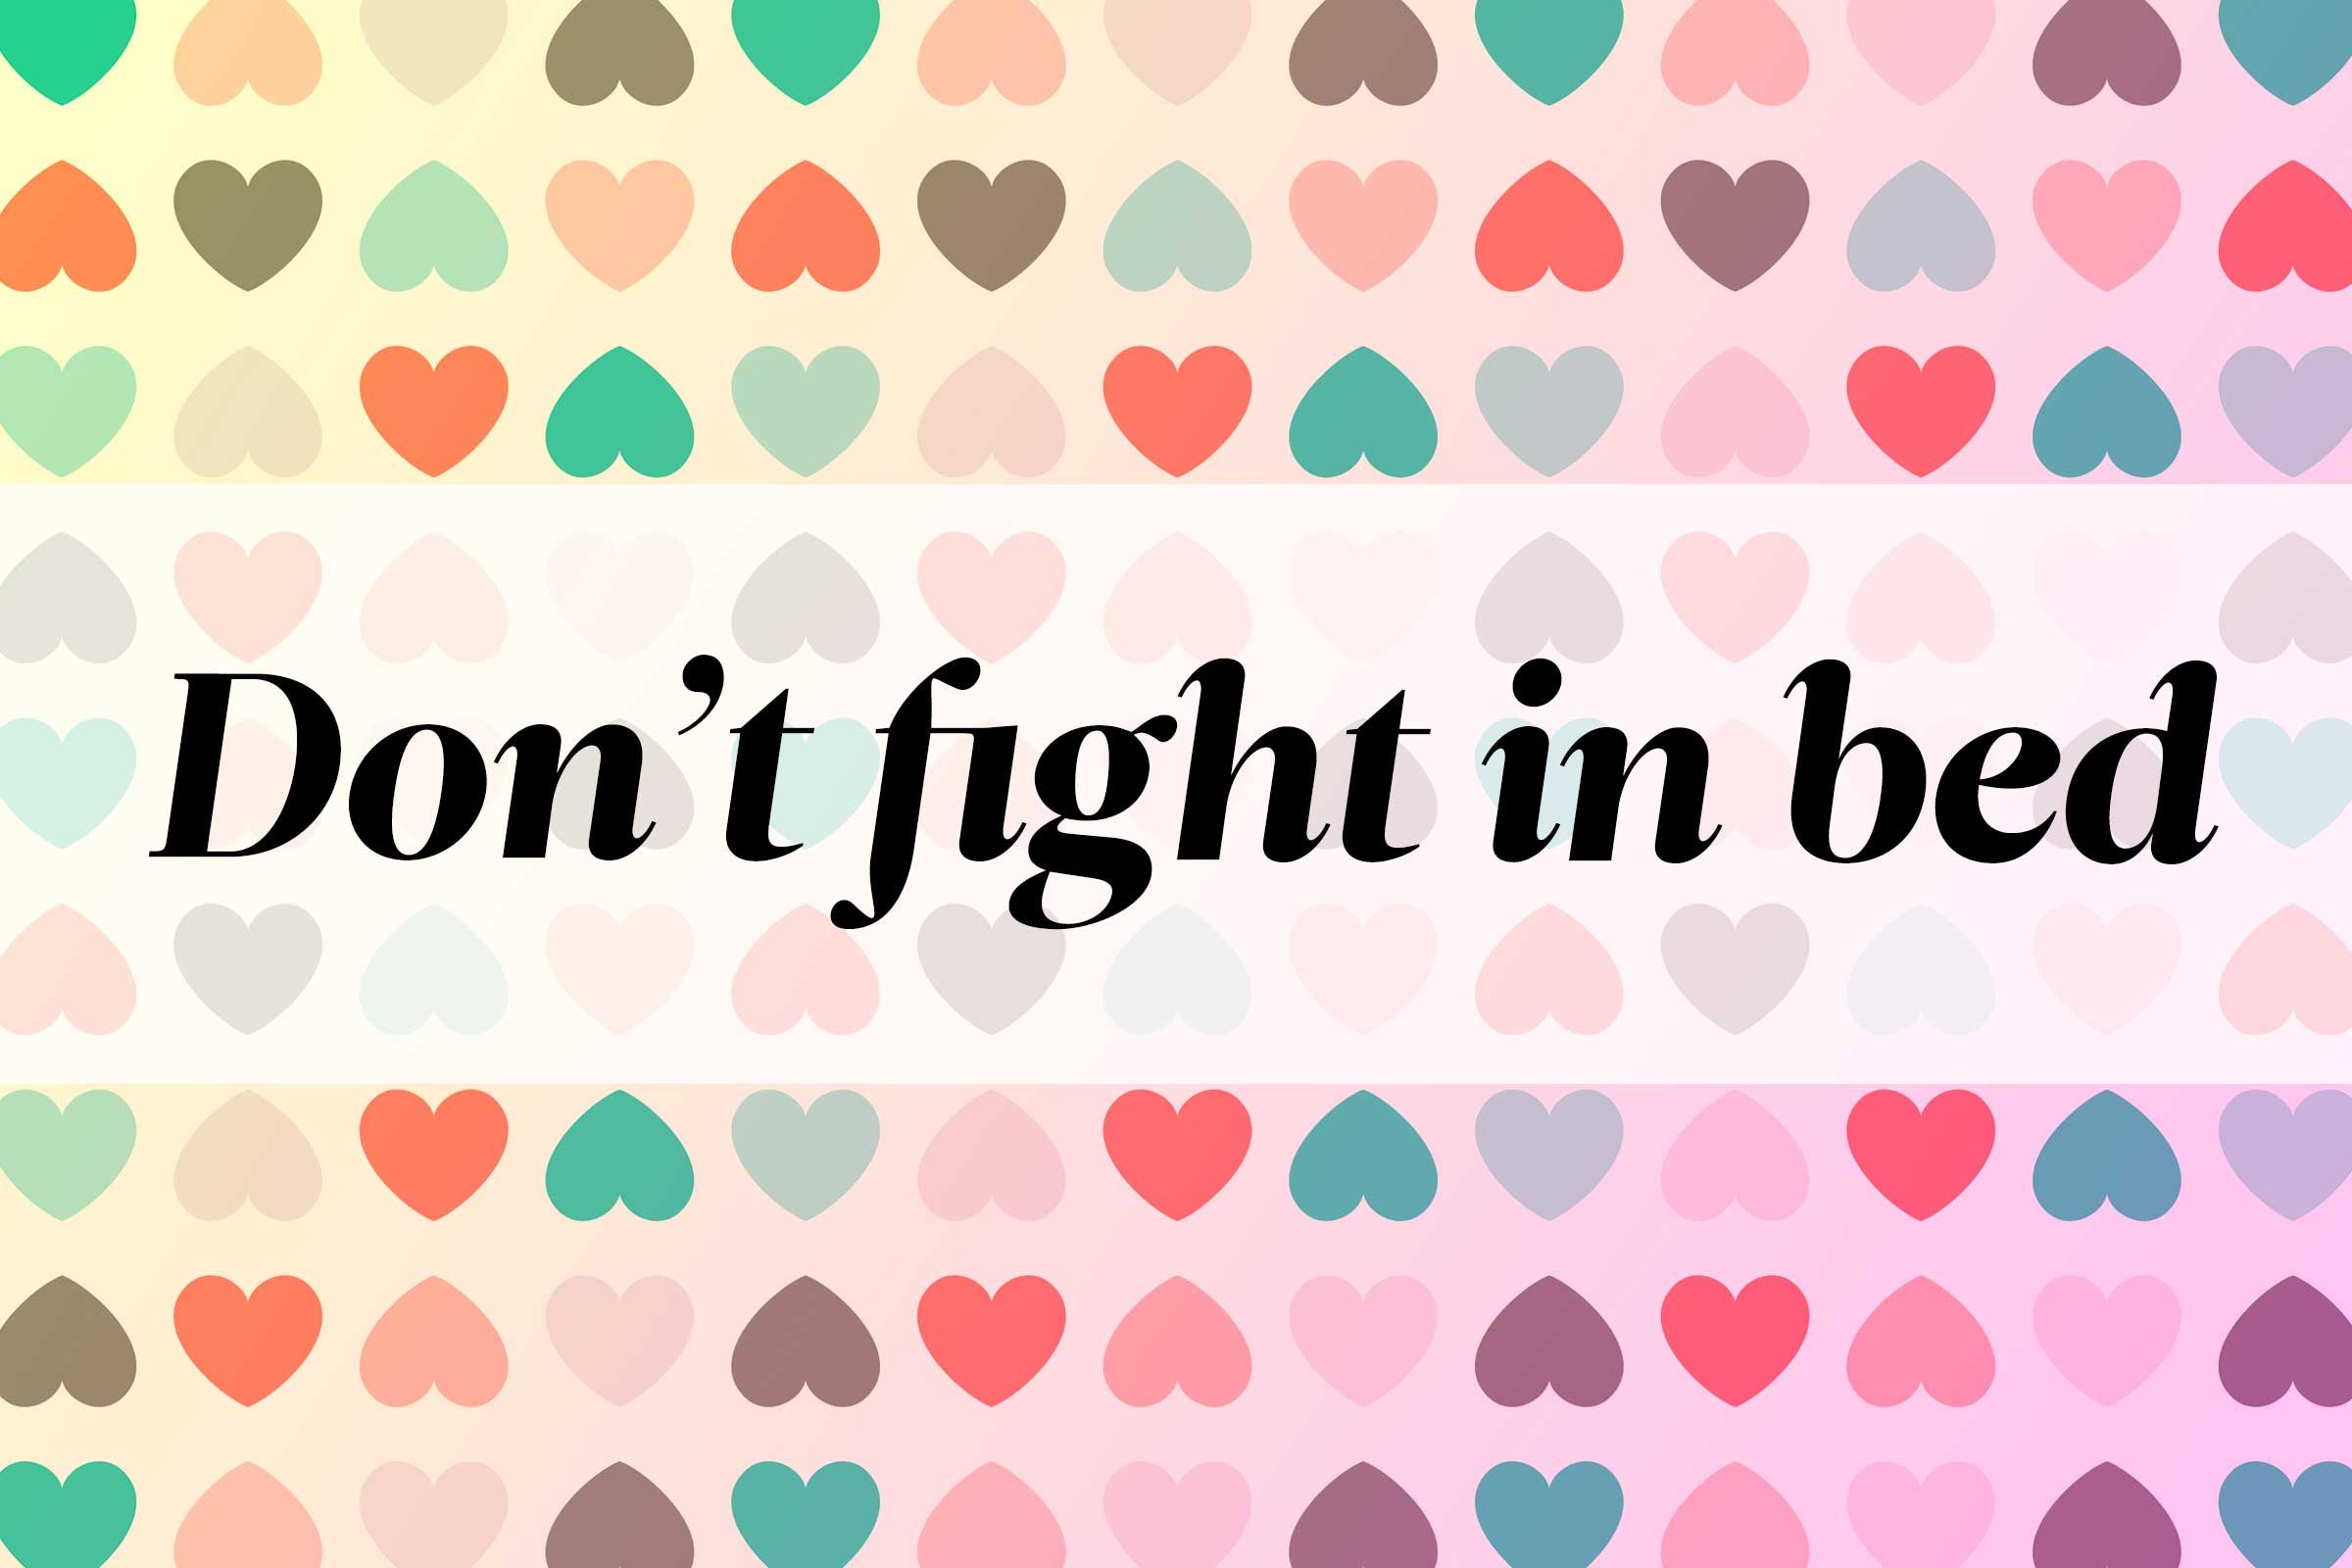 Make your bedroom a fight free zoneHappy Marriage Advice Every Couple Could Use   Reader s Digest. Romantic Bedroom Games Free Online. Home Design Ideas